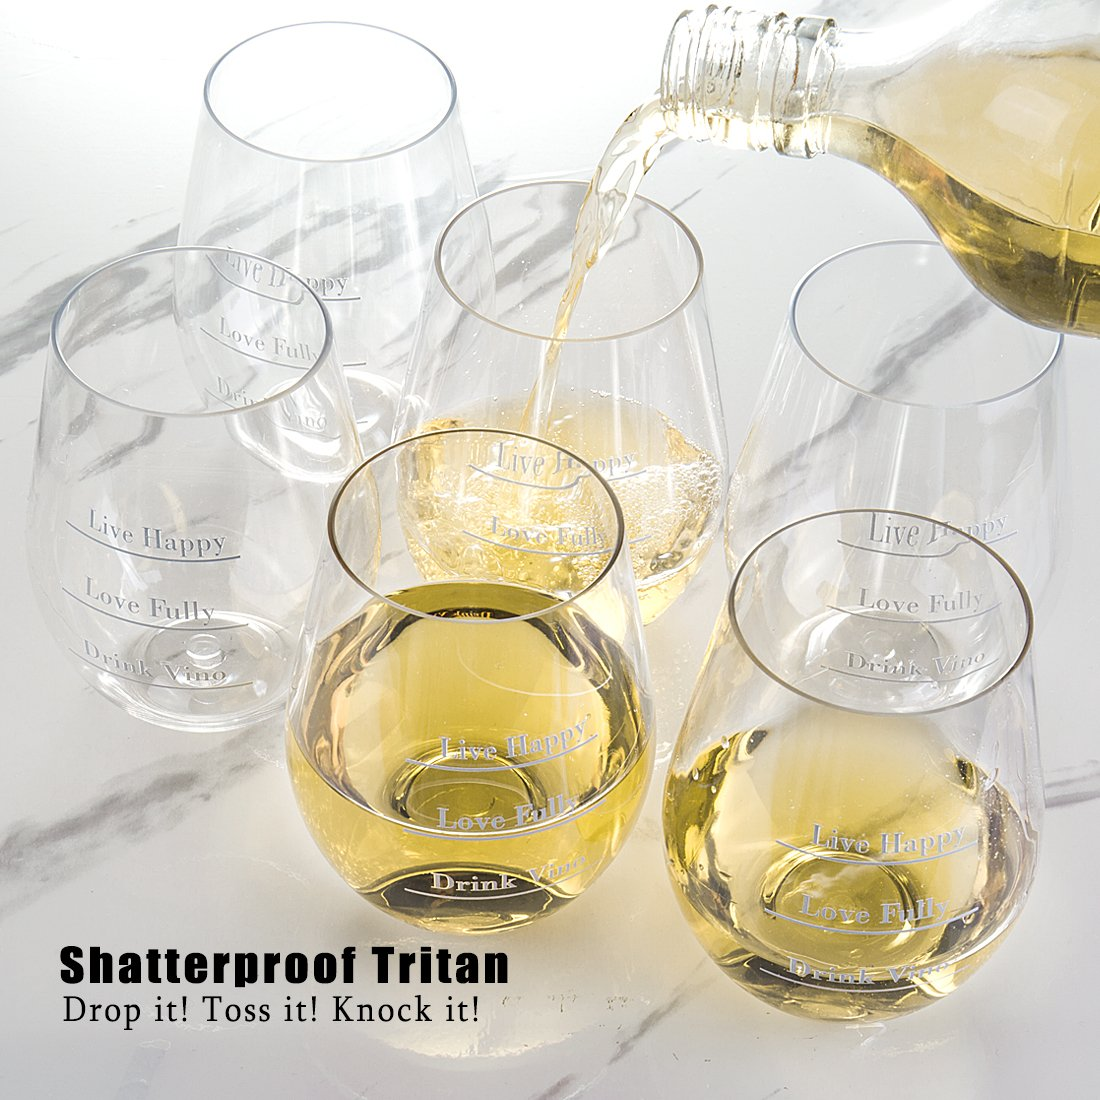 Avery Barn Tritan Wine Glasses Stemless With Saying | 6pc Set 12oz Unbreakable Shatterproof Acrylic Glassware Tumblers | BPA-Free Plastic | For Red White Wines | Boat & Pool Parties | Dish Washer Safe by Avery Barn (Image #2)